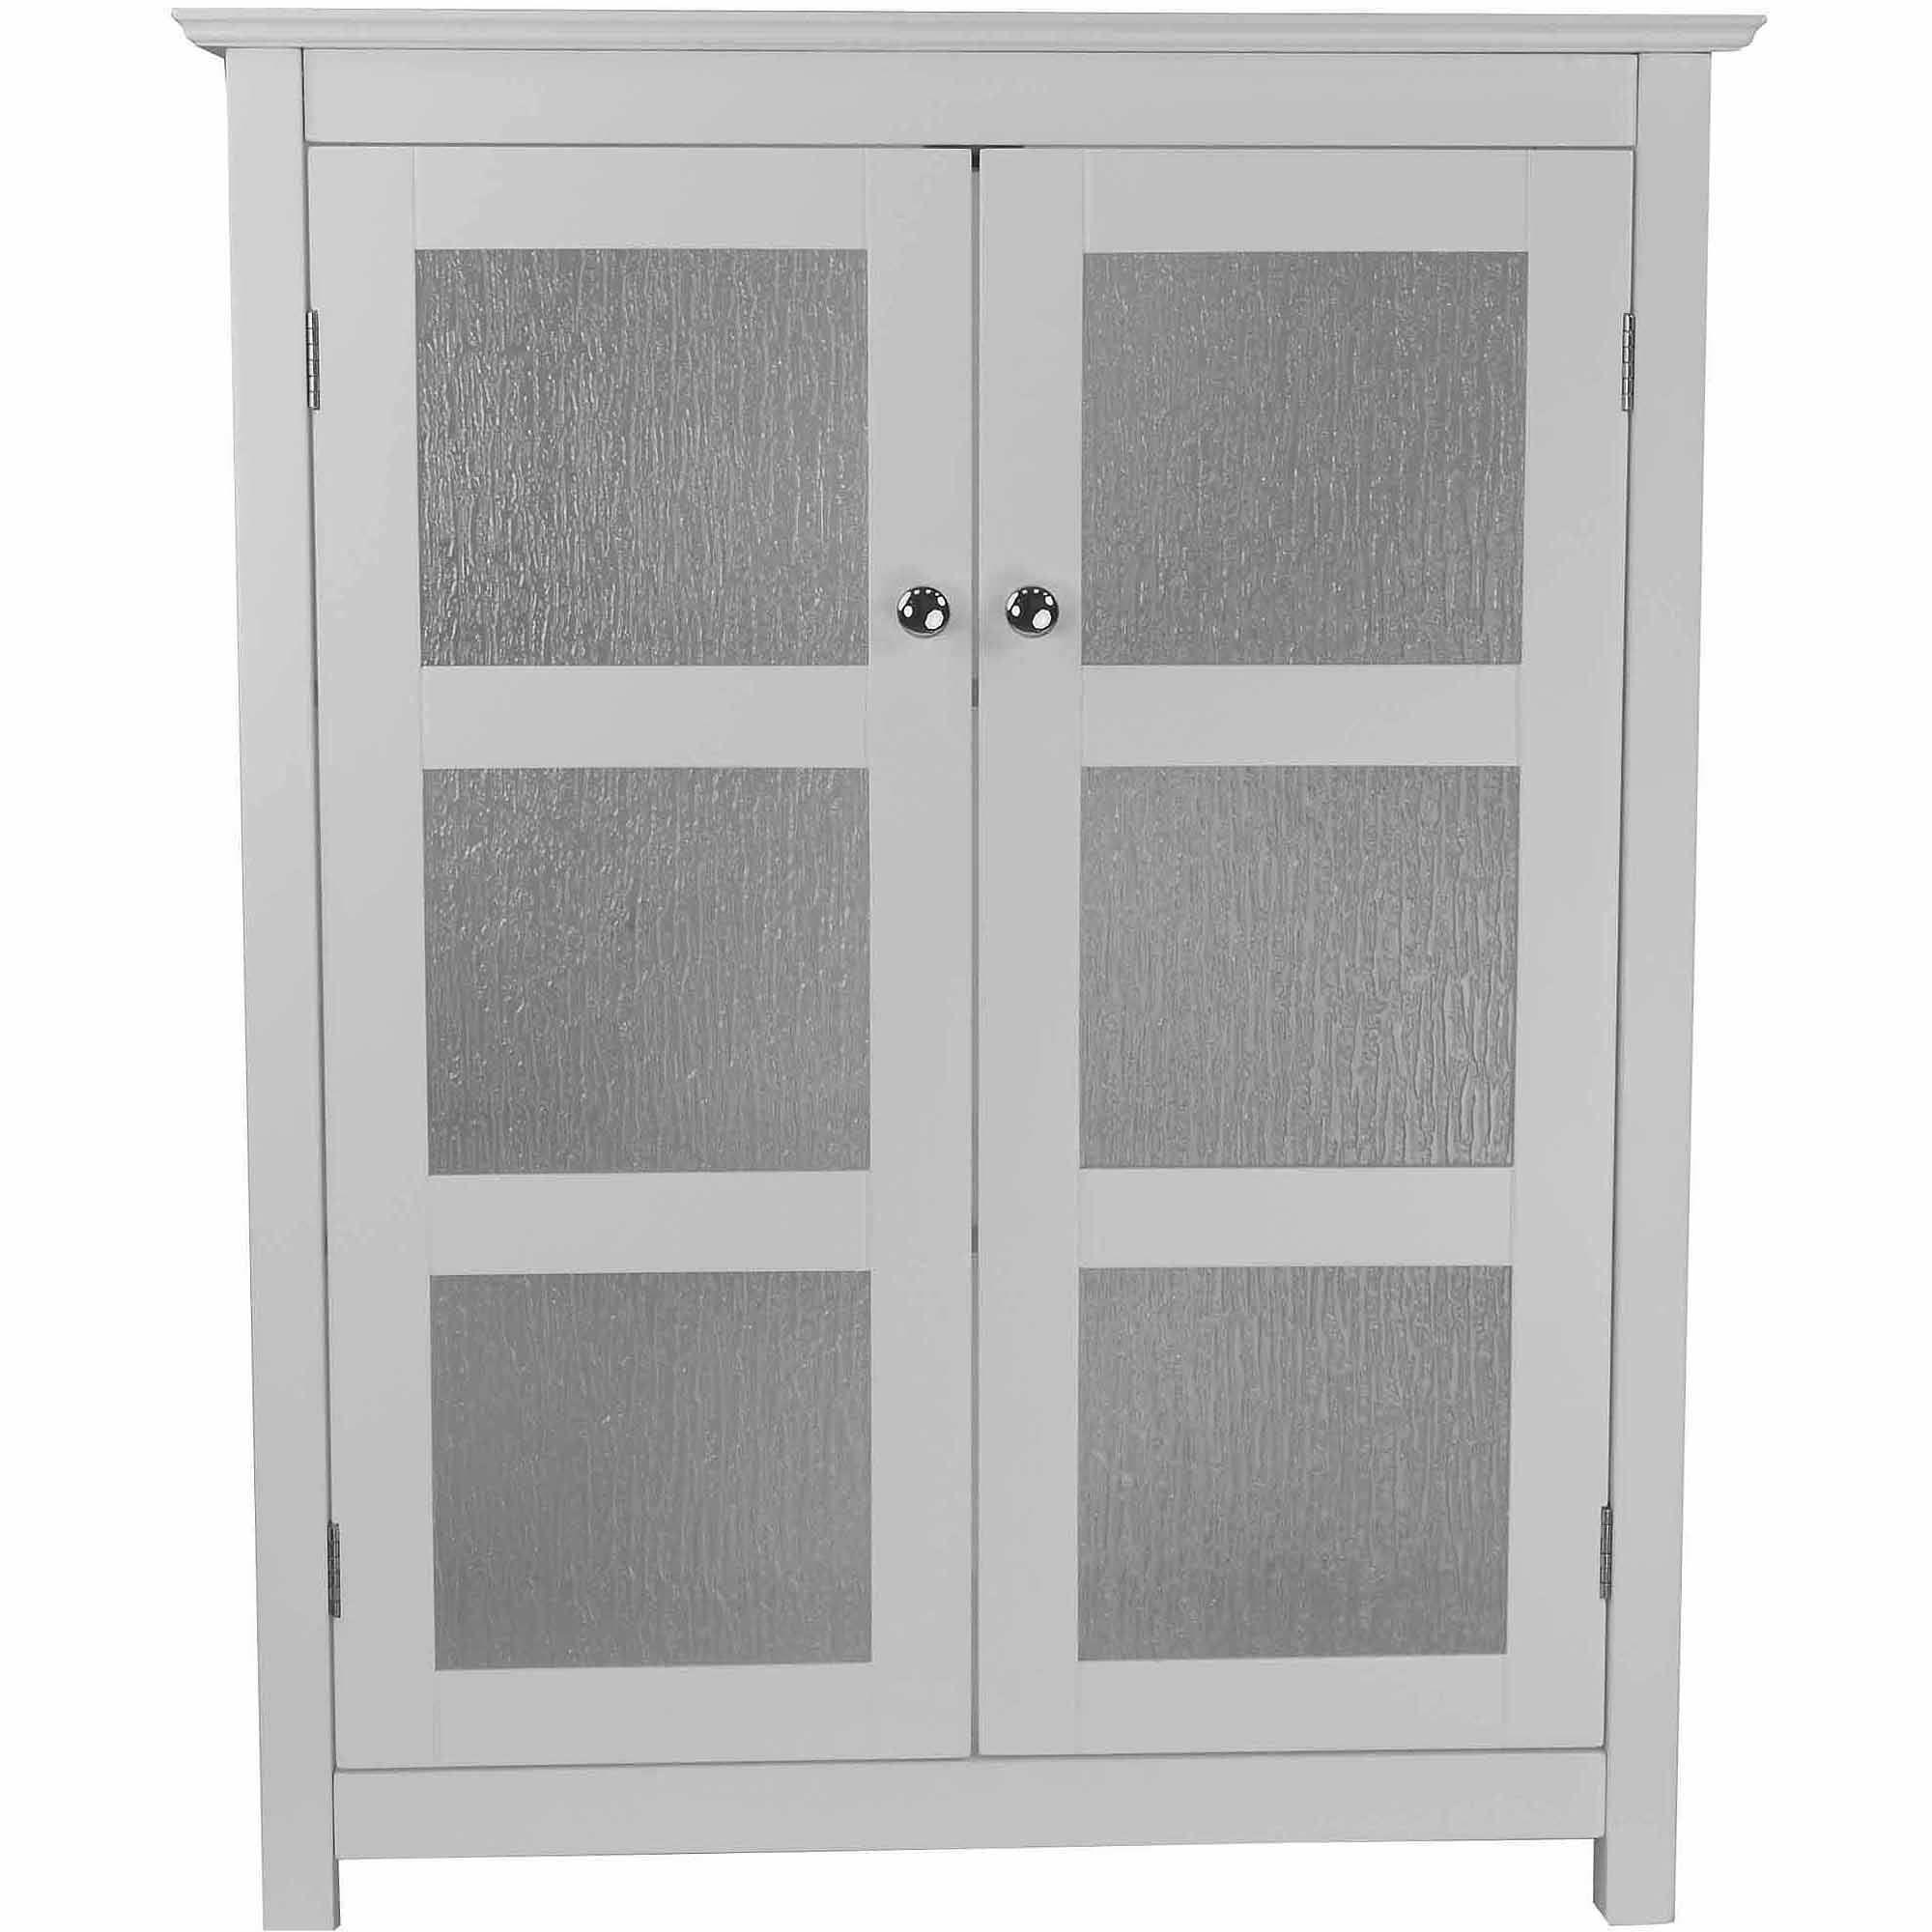 Connor Floor Cabinet with 2 Glass Doors White Walmart